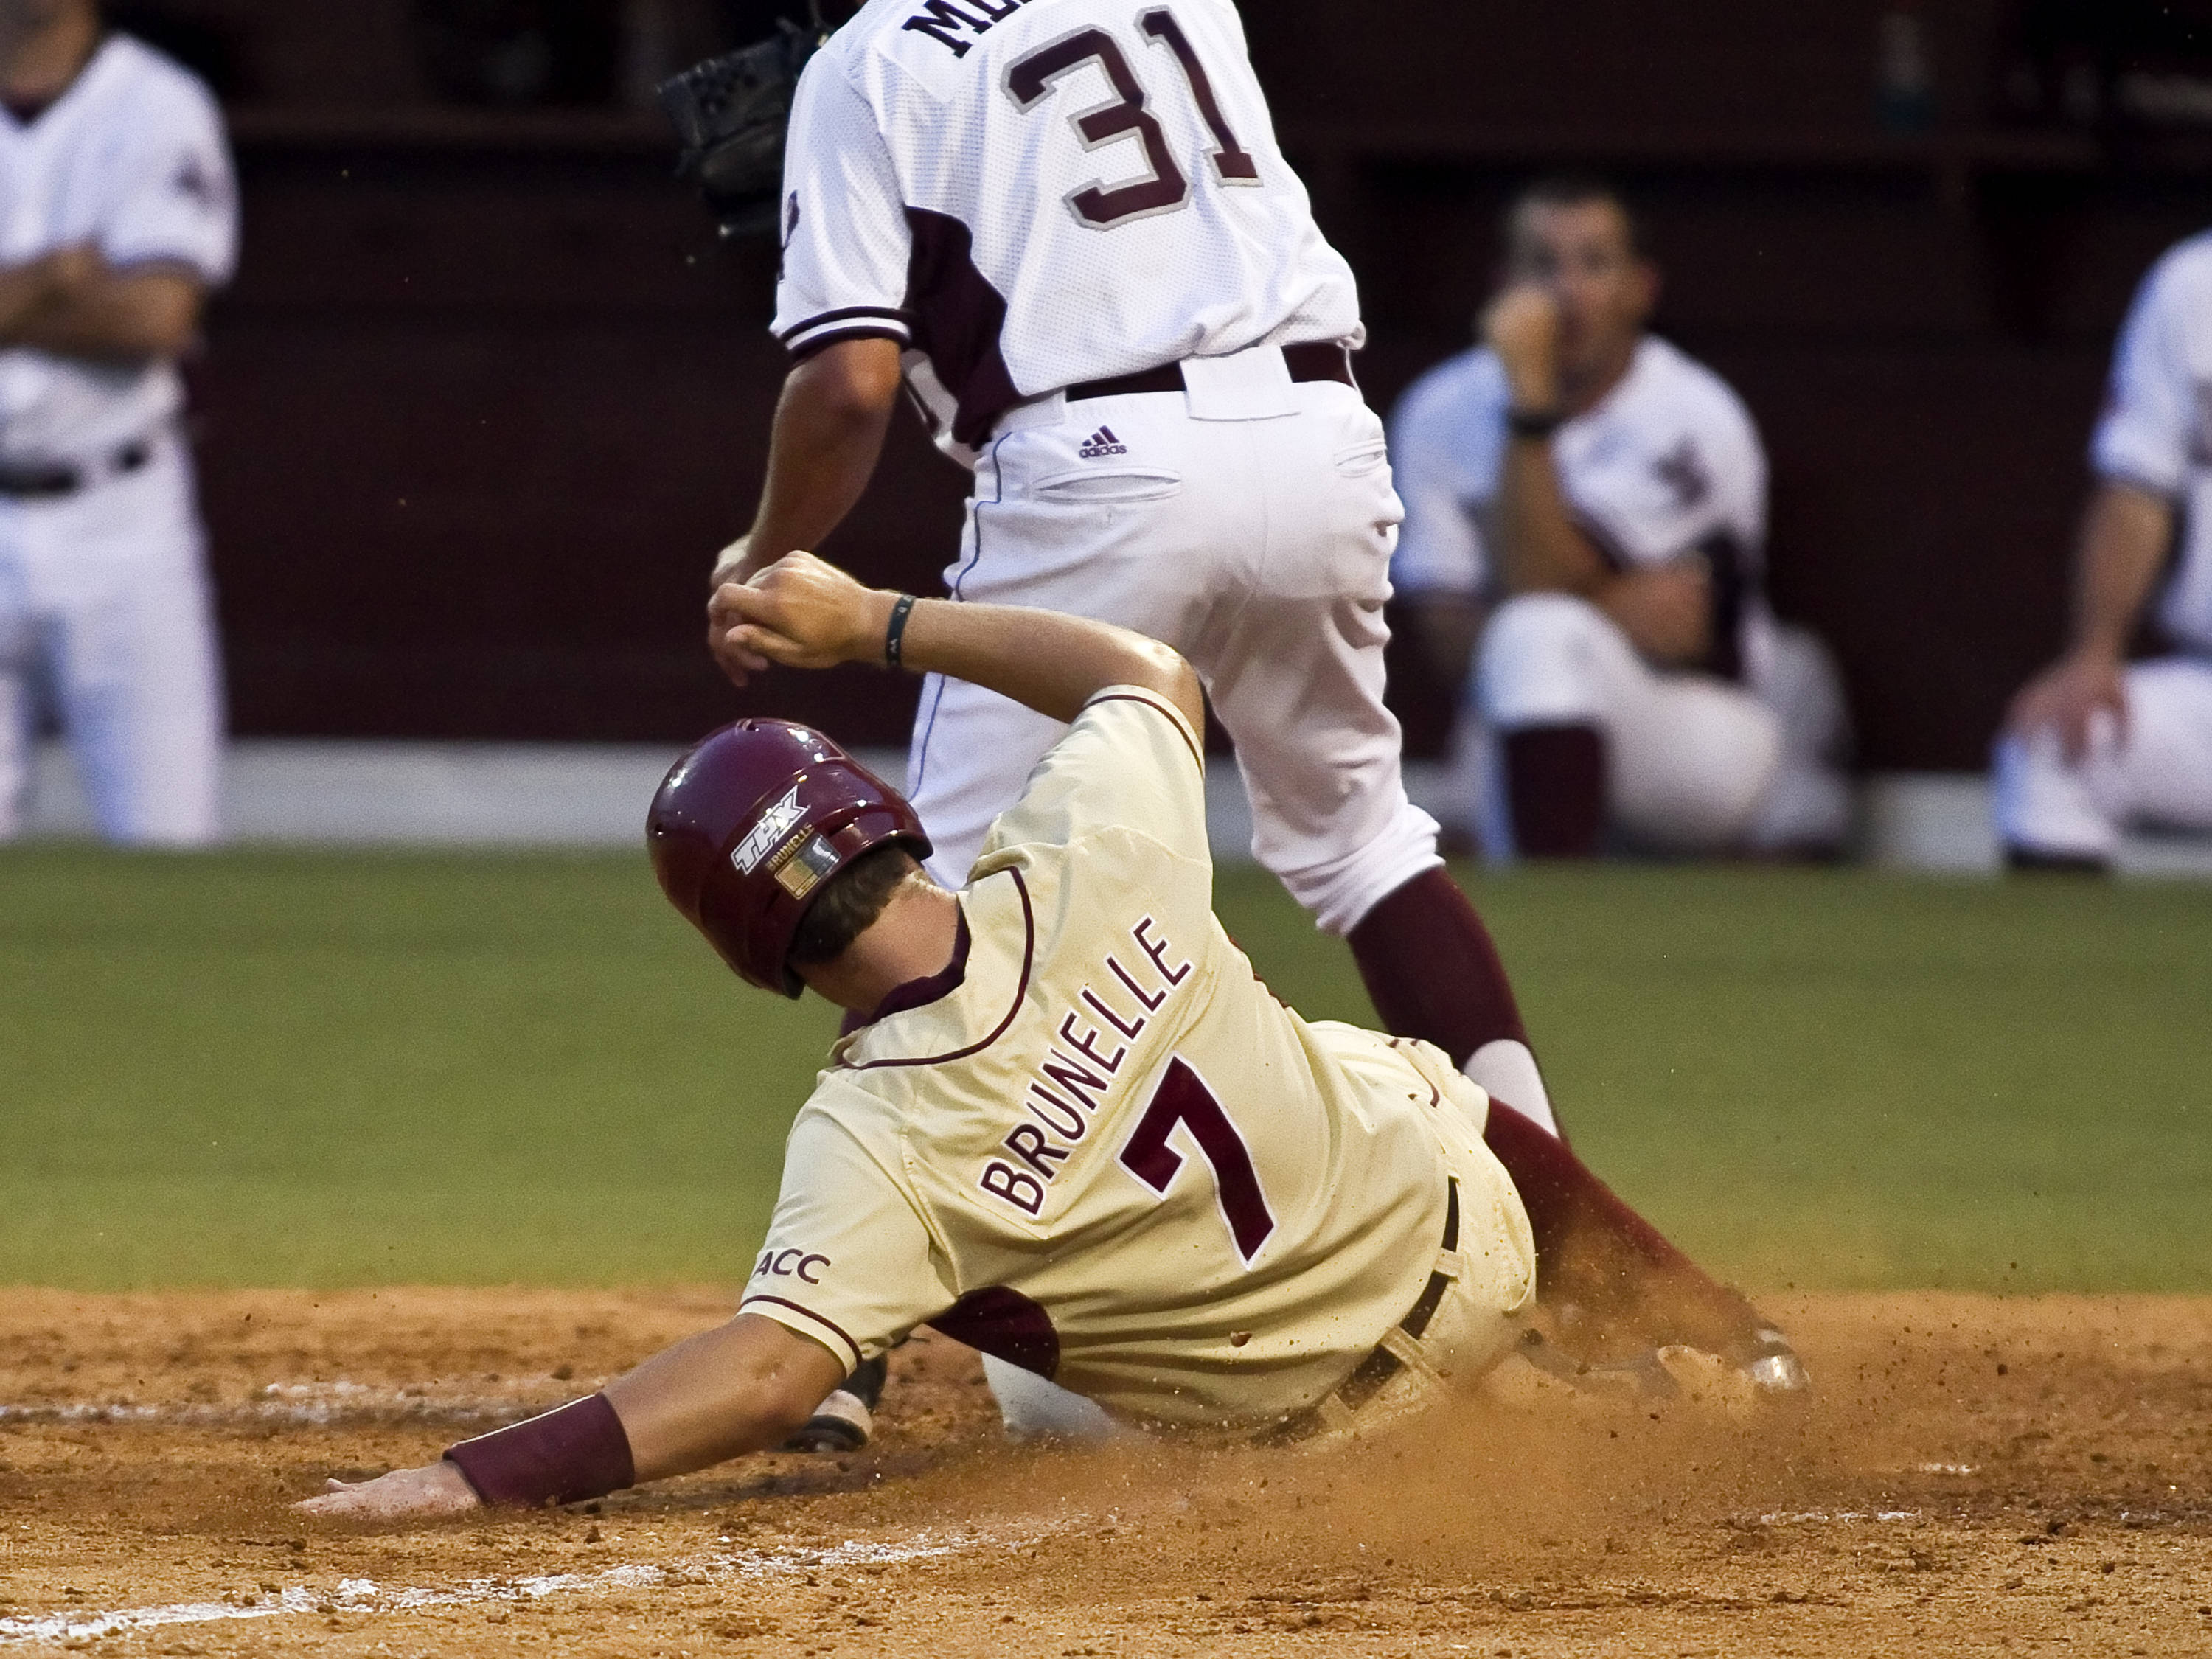 Parker Brunelle (7) scoring on a wild pitch in the 8th inning